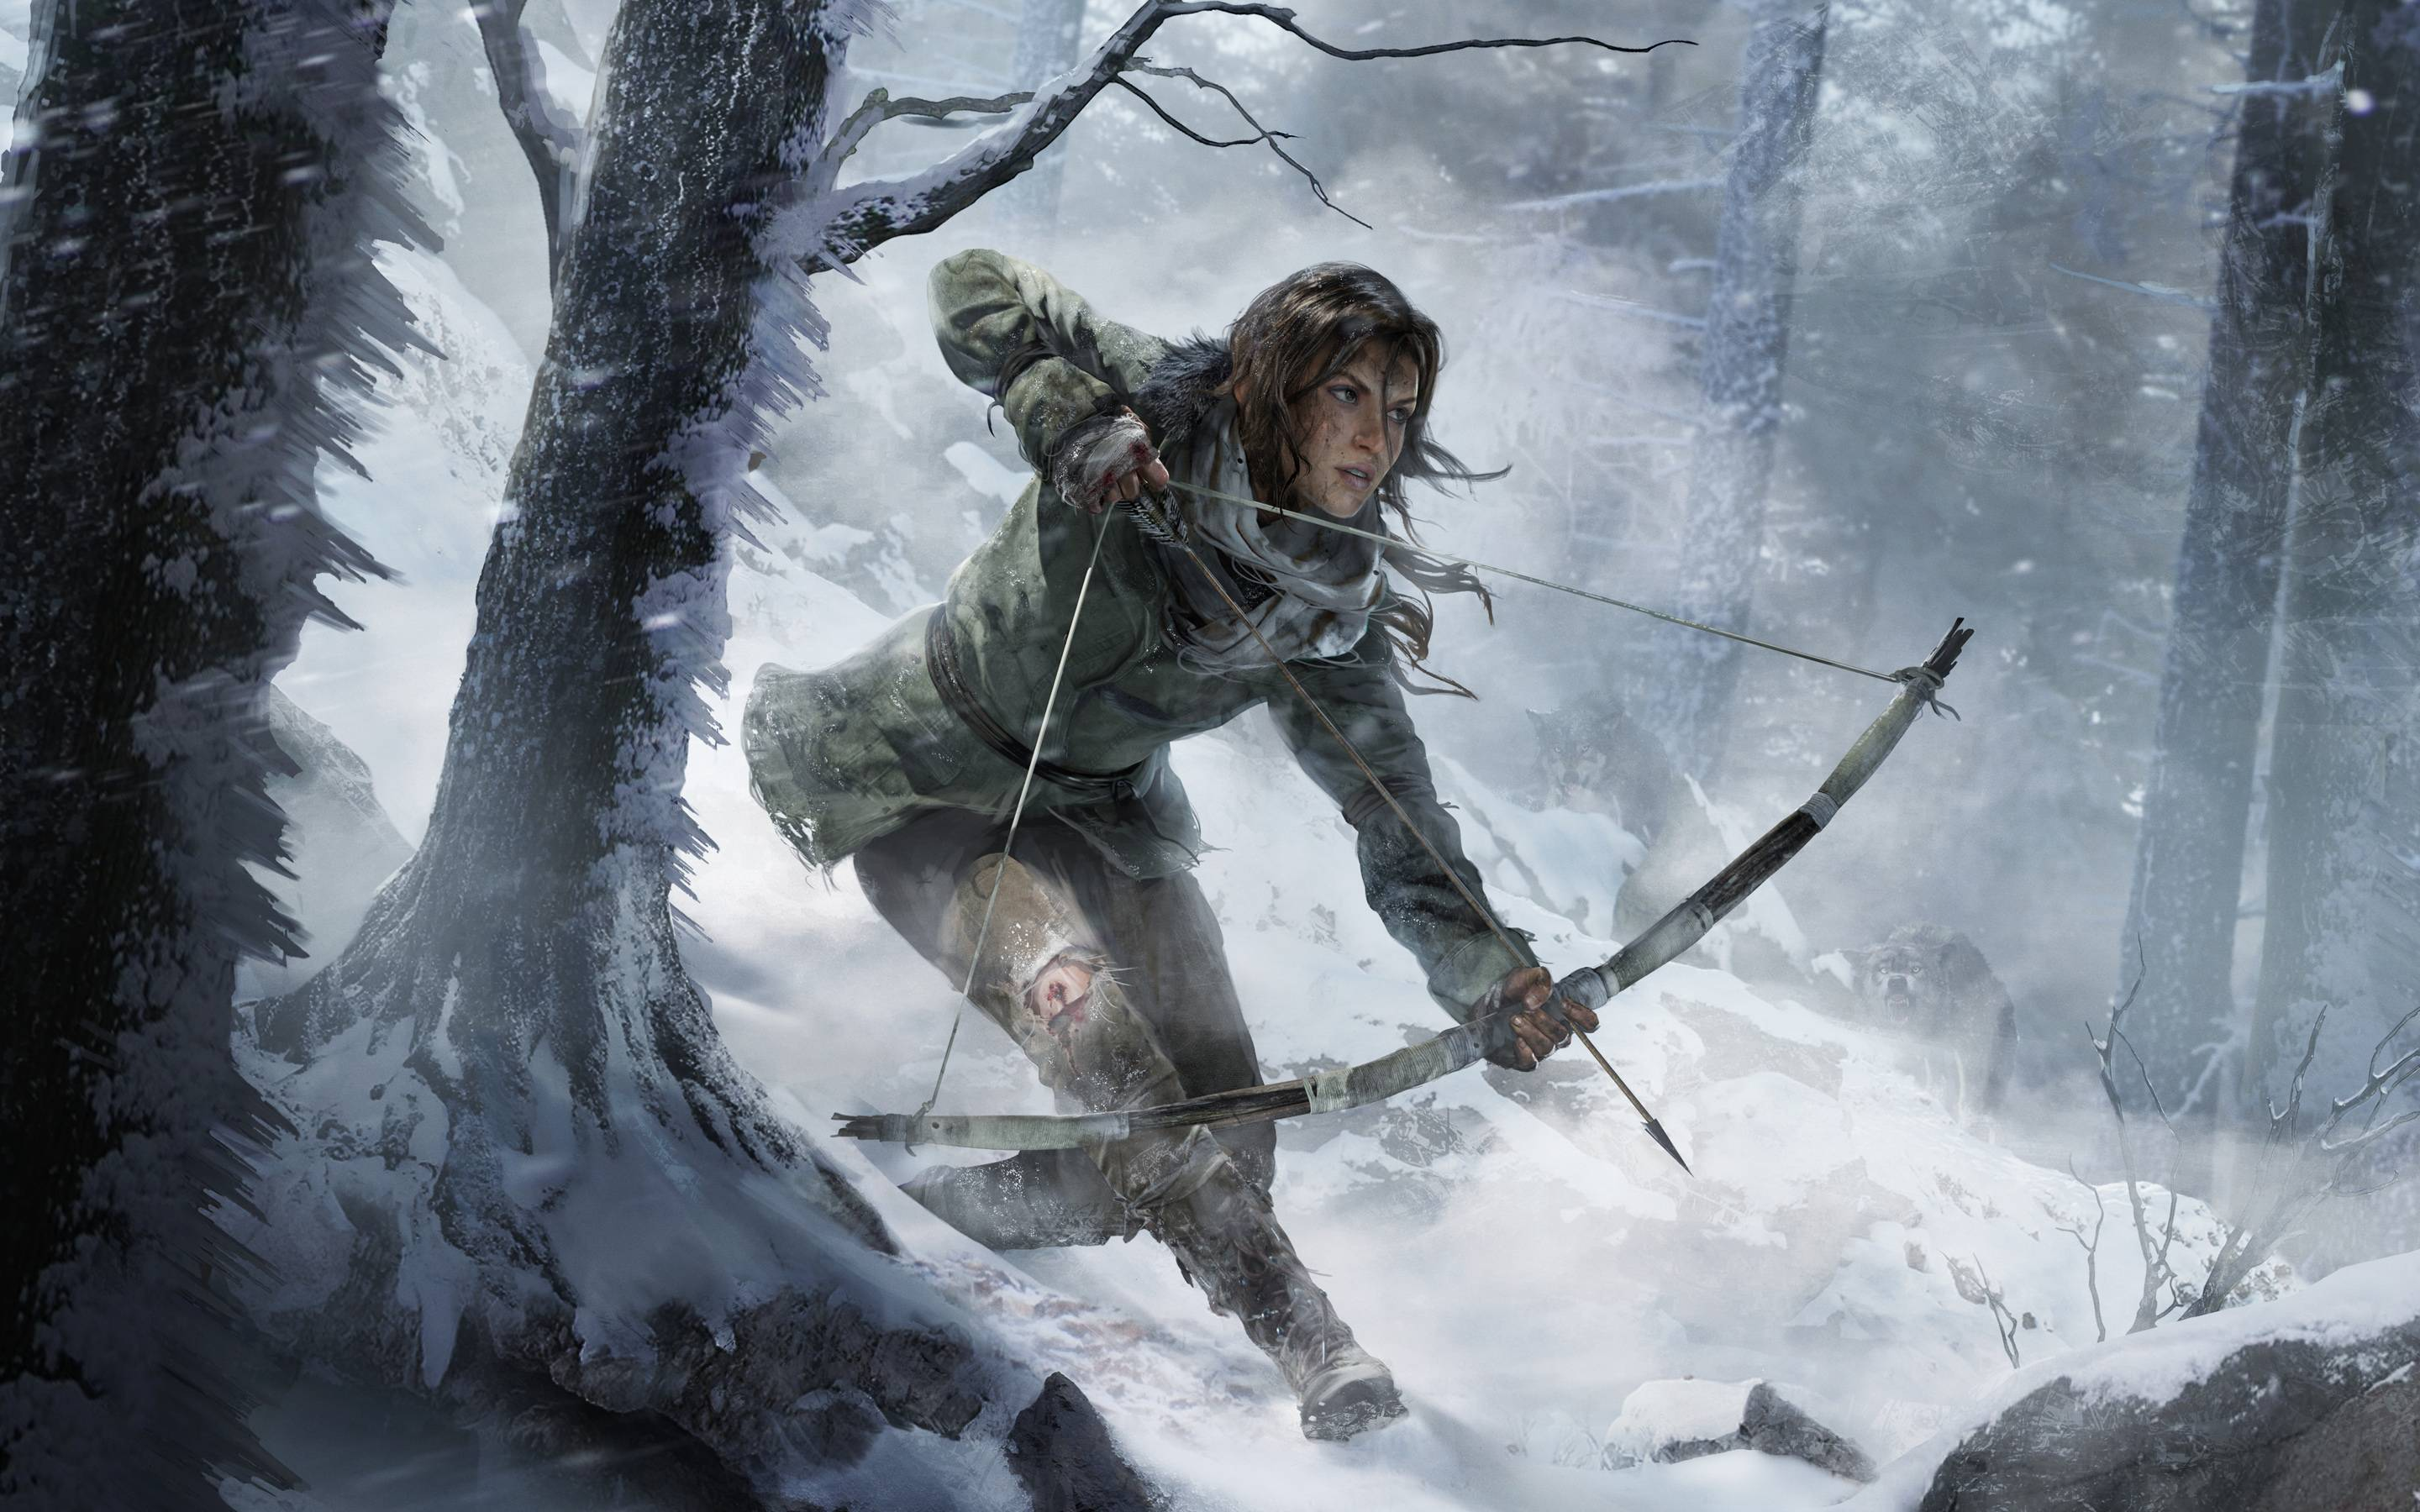 Download Rise Of The Tomb Raider 2015 Game HD Resolutions Image